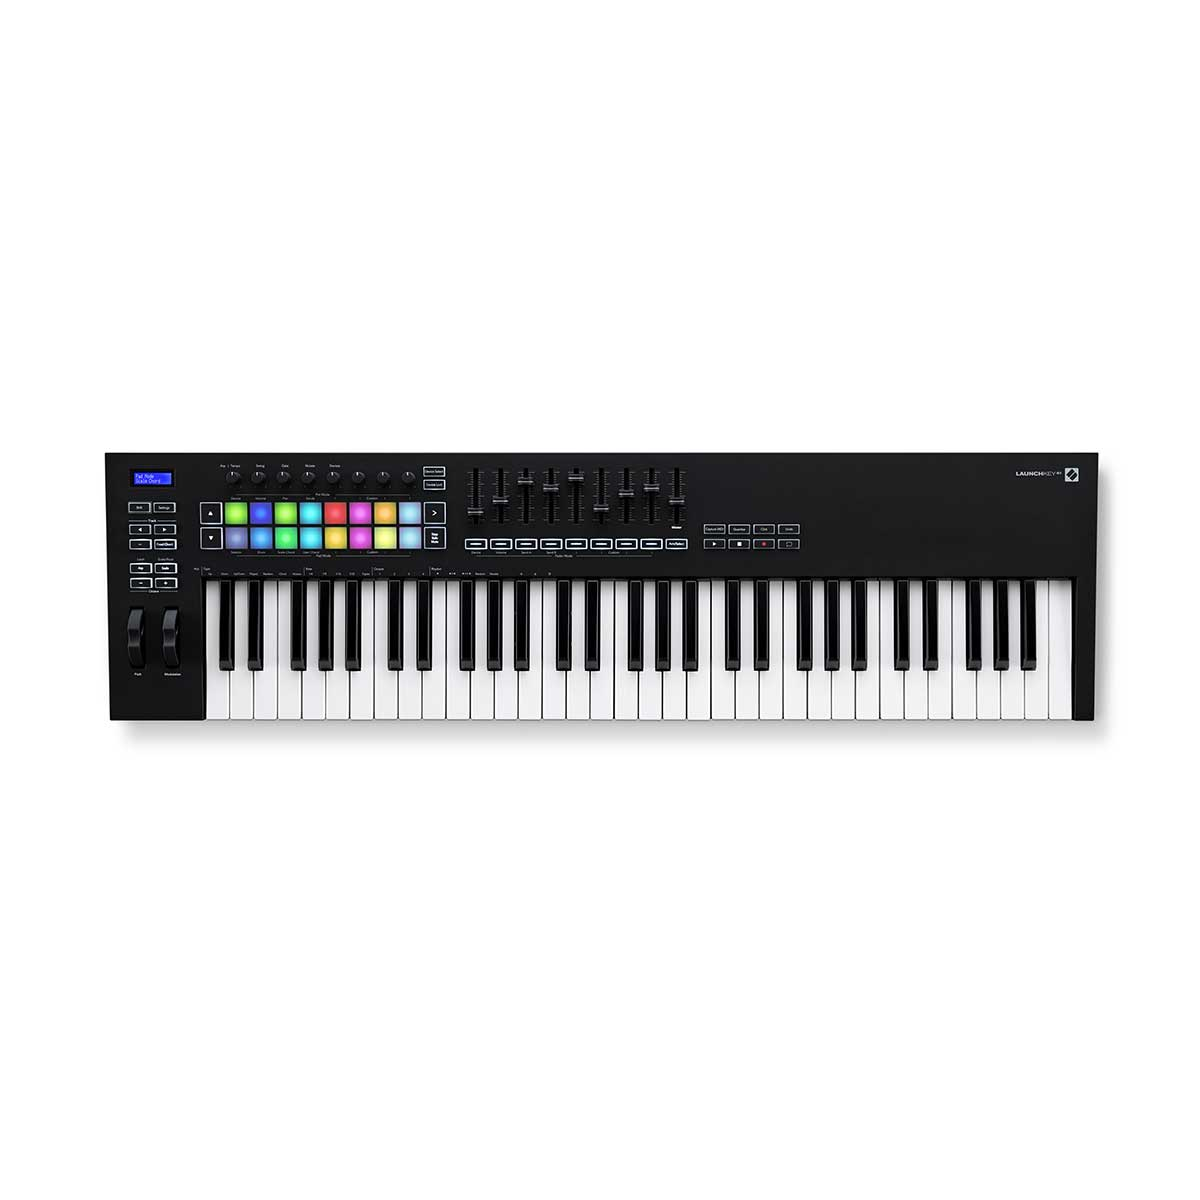 Novation Launchkey 61 MK3 61-Note Keyboard Controller